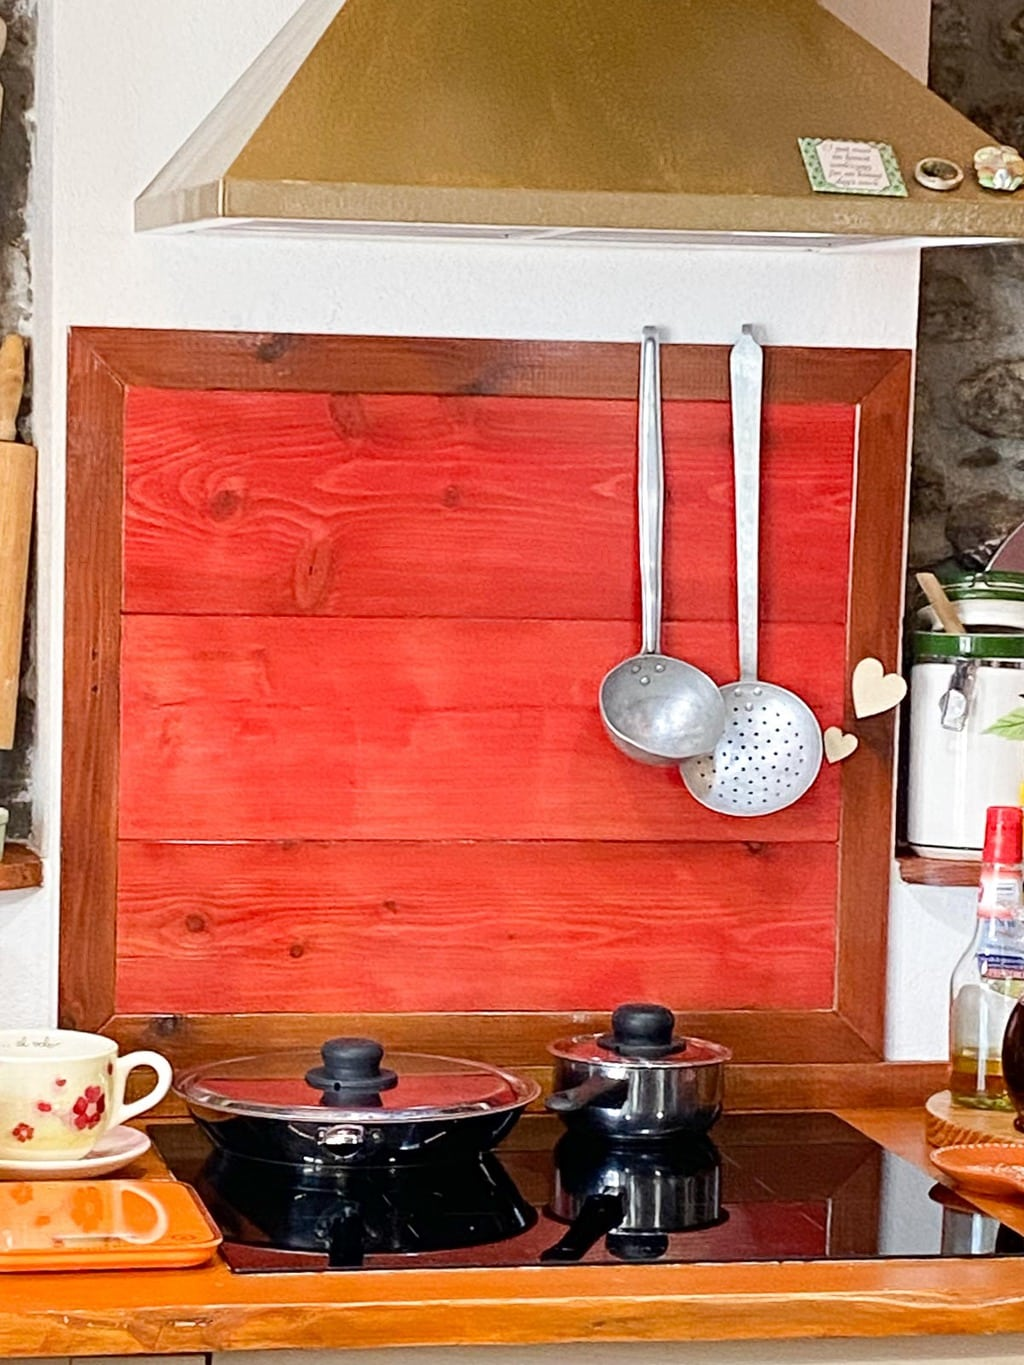 Vertical photo of Franca's stovetop in her kitchen with a colorful wood backsplash area and cooking tools.